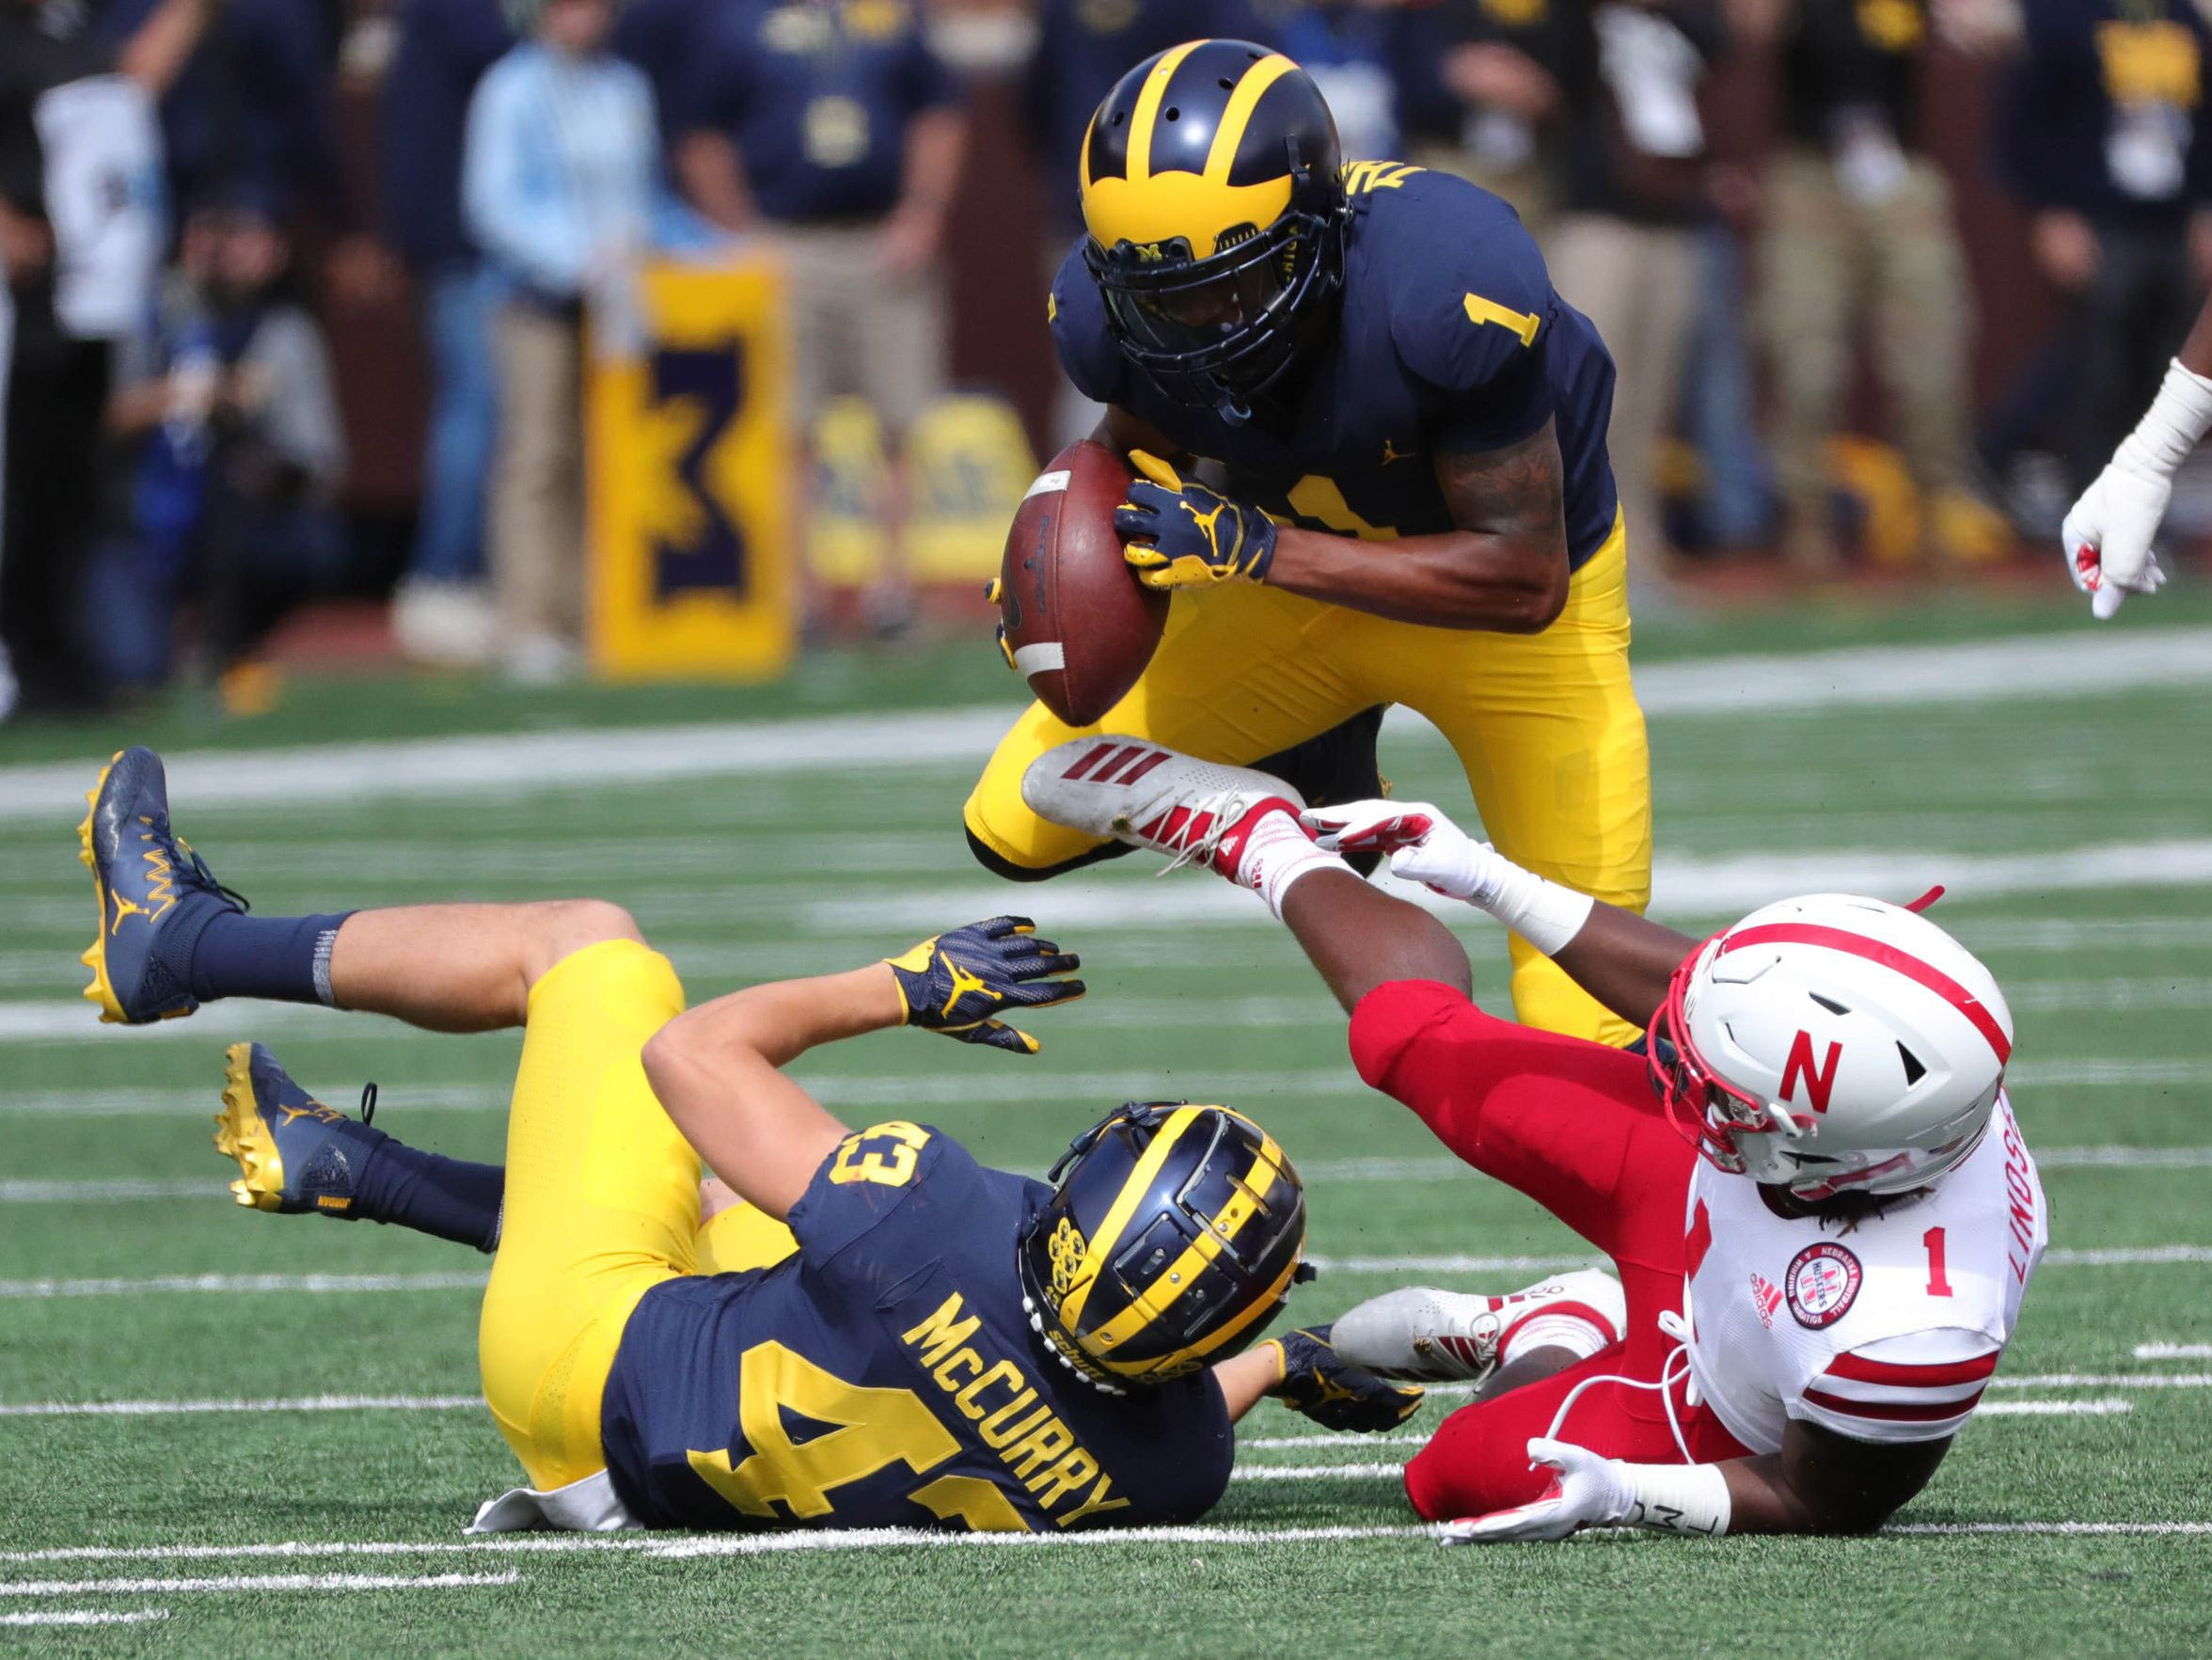 Michigan defensive back Ambry Thomas recovers a fumble by Nebraska receiver Tyjon Lindsey at Michigan Stadium.